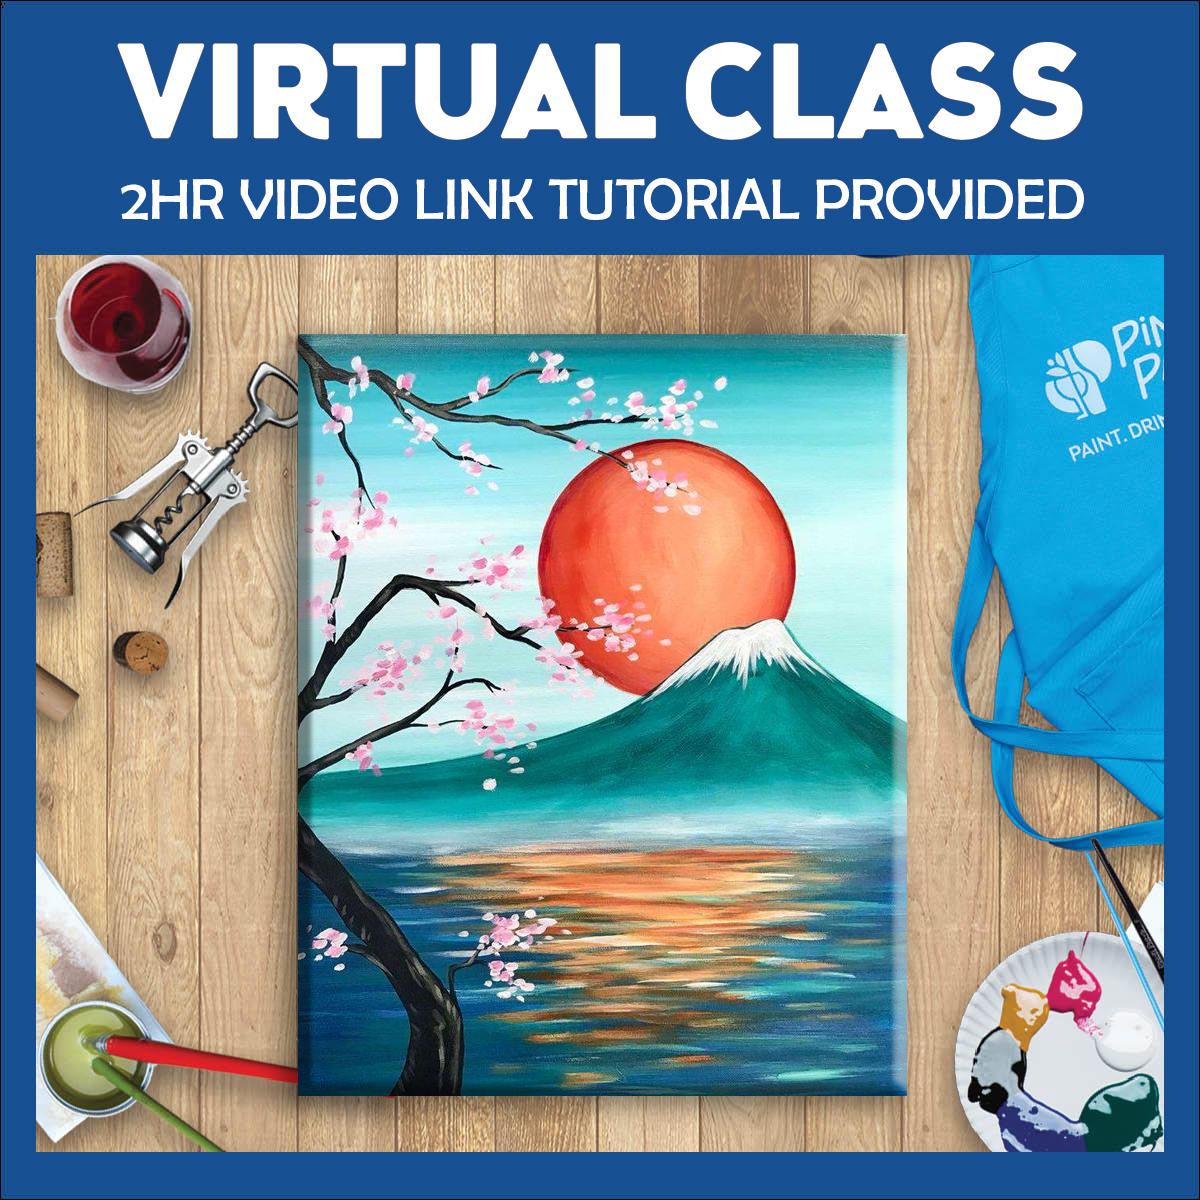 New - Live Virtual Painting Class Experience